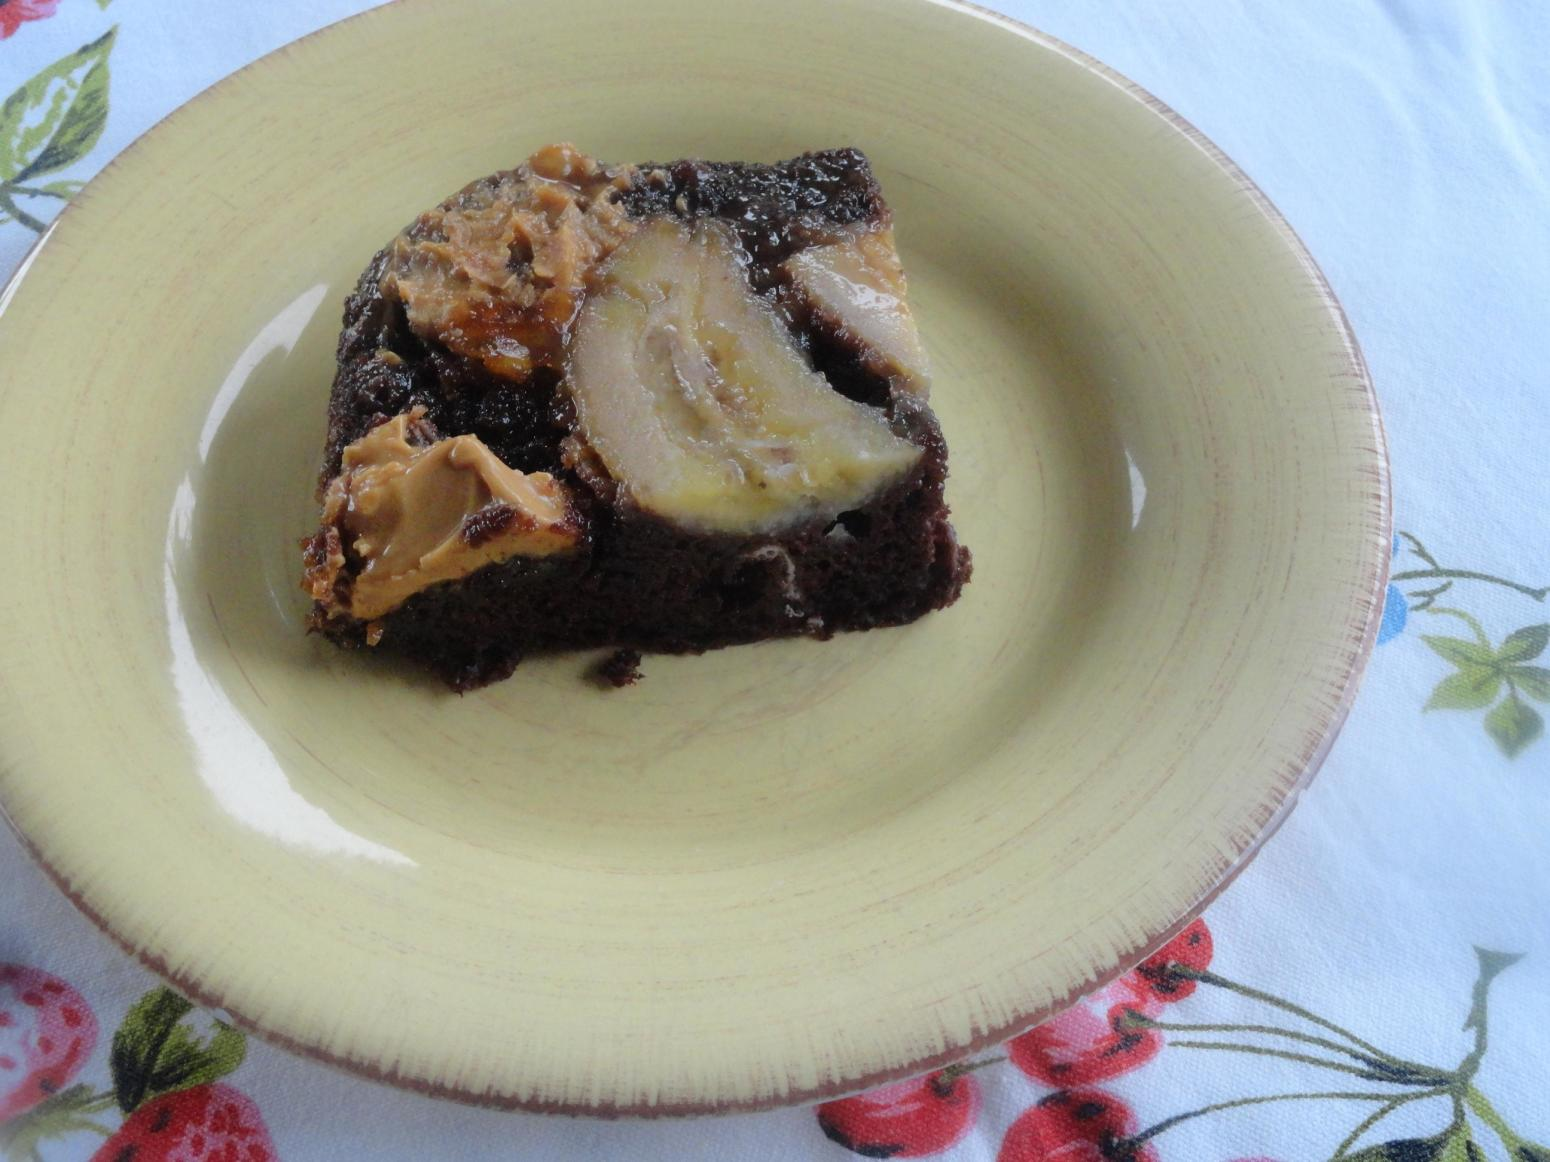 CHOCOLATE PBJ BANANA  UPSIDE DOWN DUMP CAKE Recipe